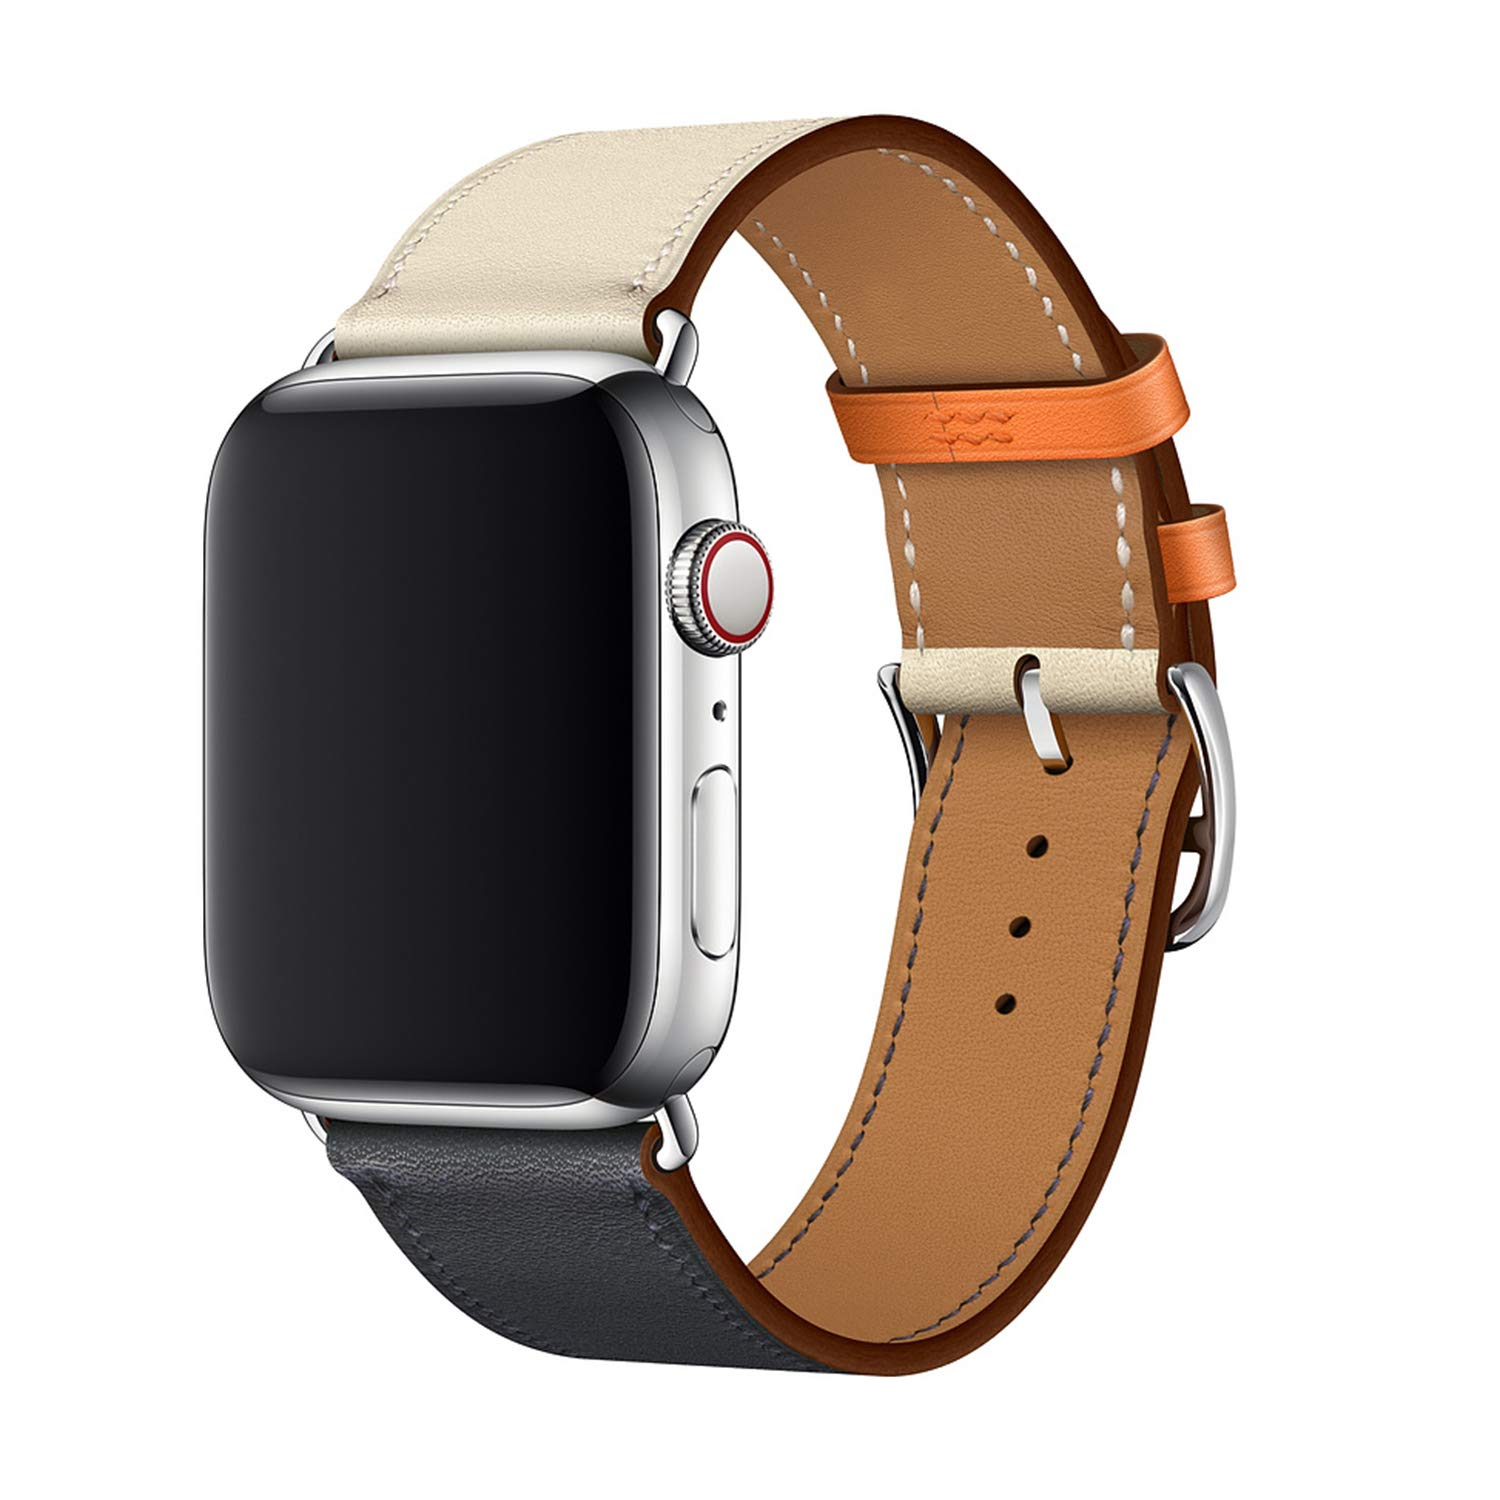 dc24bc2fb9 XCool pour Bracelet Apple Watch 38mm 40mm, Cuir Orange Bleu Bande de  Remplacement pour iwatch Series 4 Series 3 Series 2 Series 1 Hermes  (38mm/40mm, ...